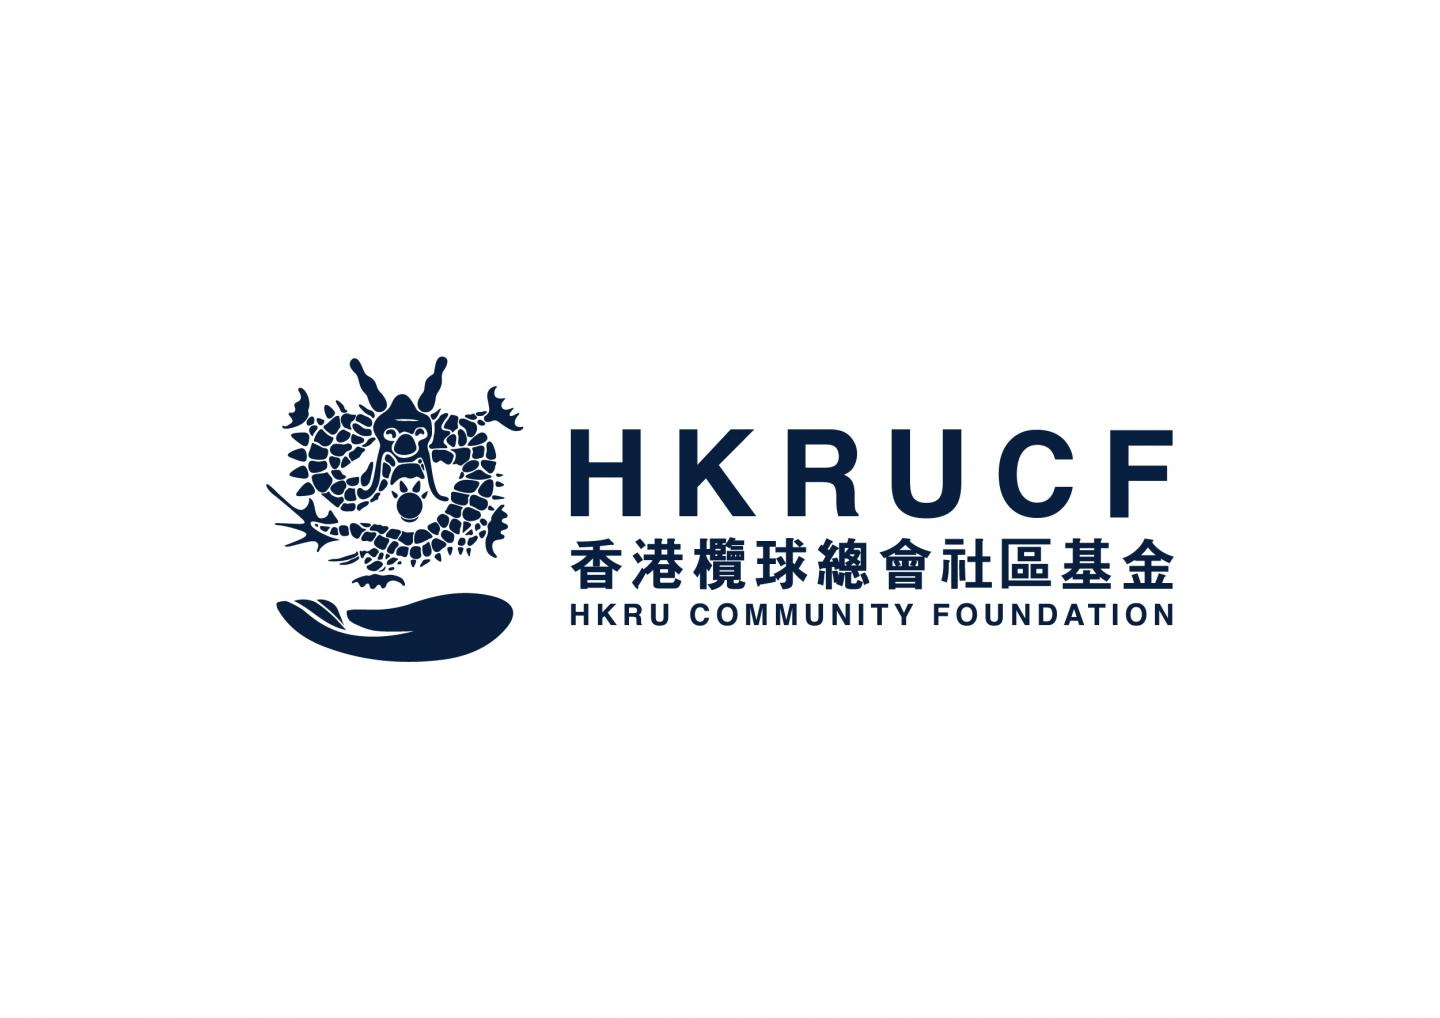 HKRUCF is a proud client of cievents